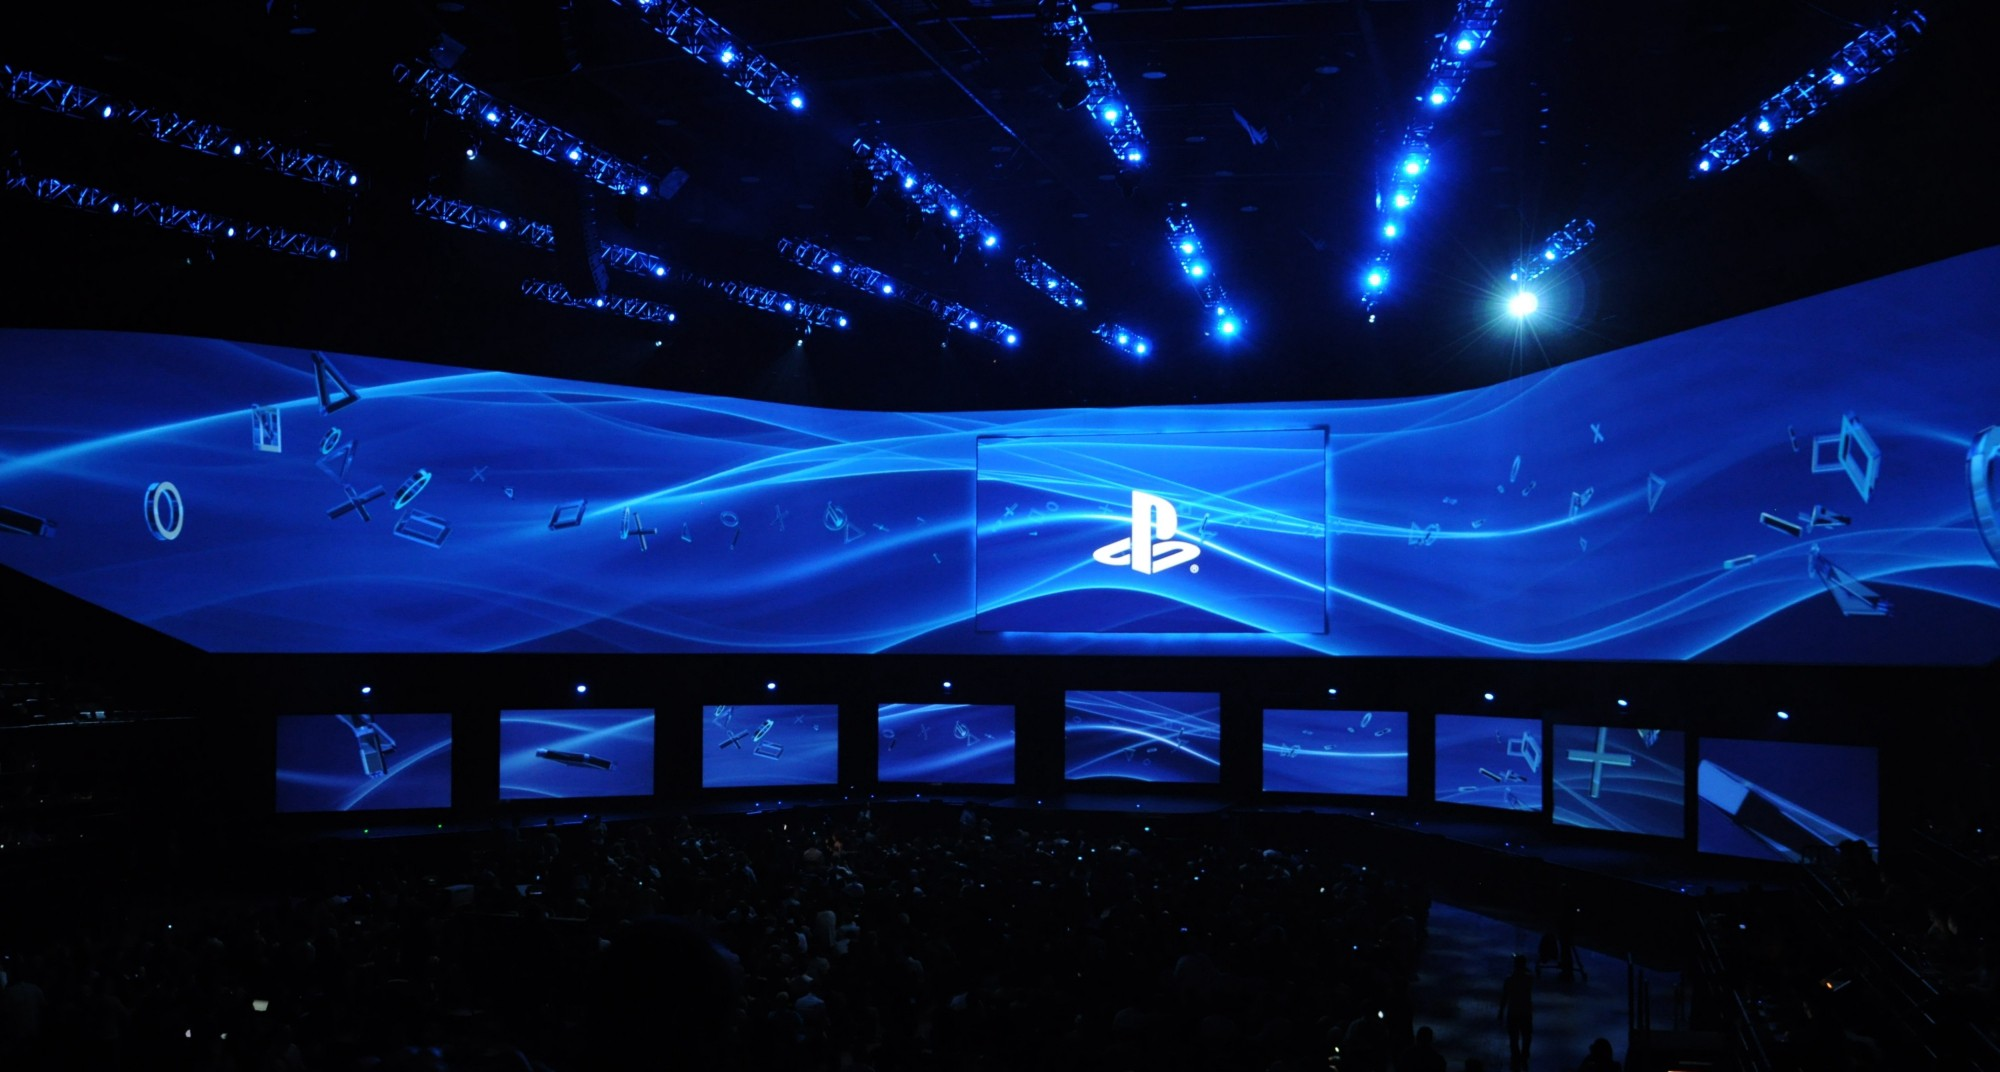 PS5: Price, Release Date, Specs, and Features for Sony's VR